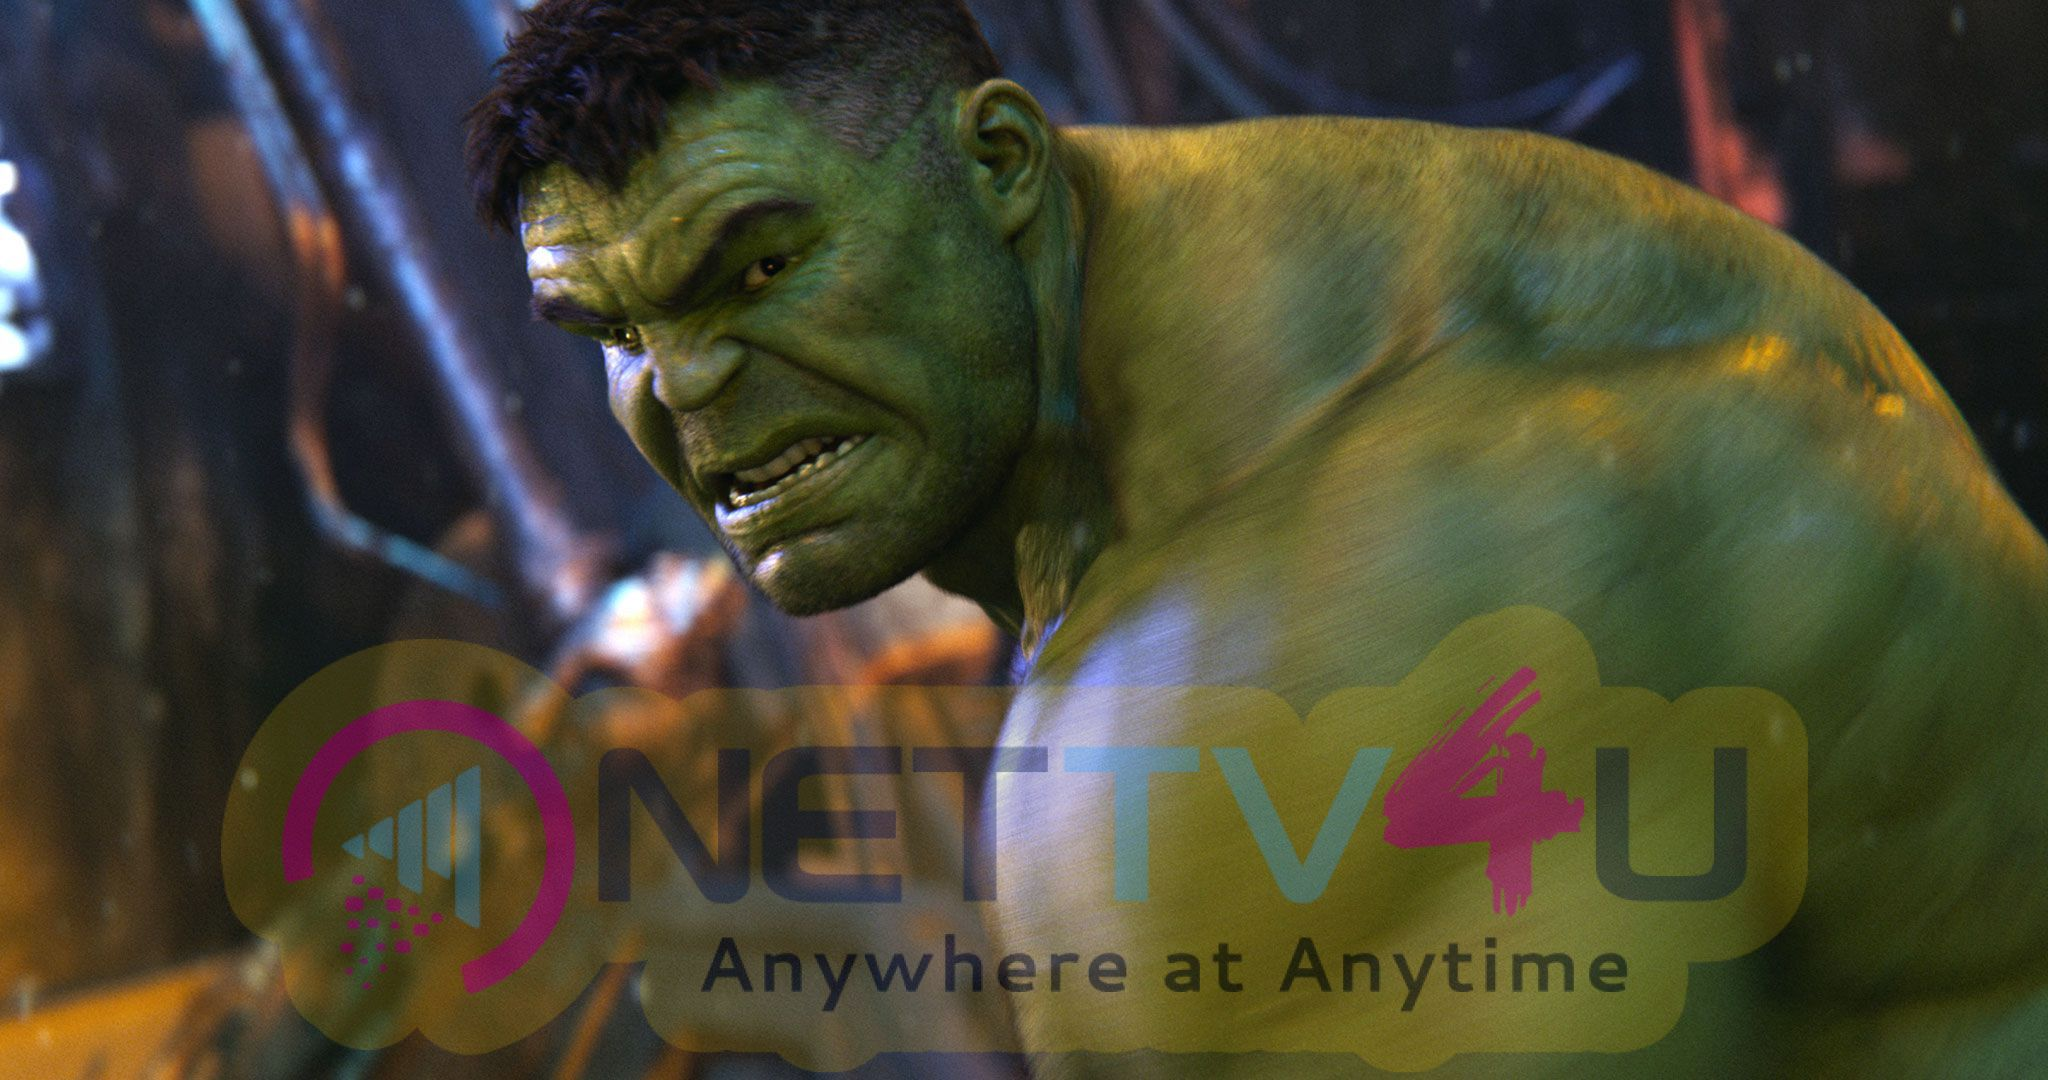 Avenger End Game Picture: Avengers End Game Movie Stills And Images 611204